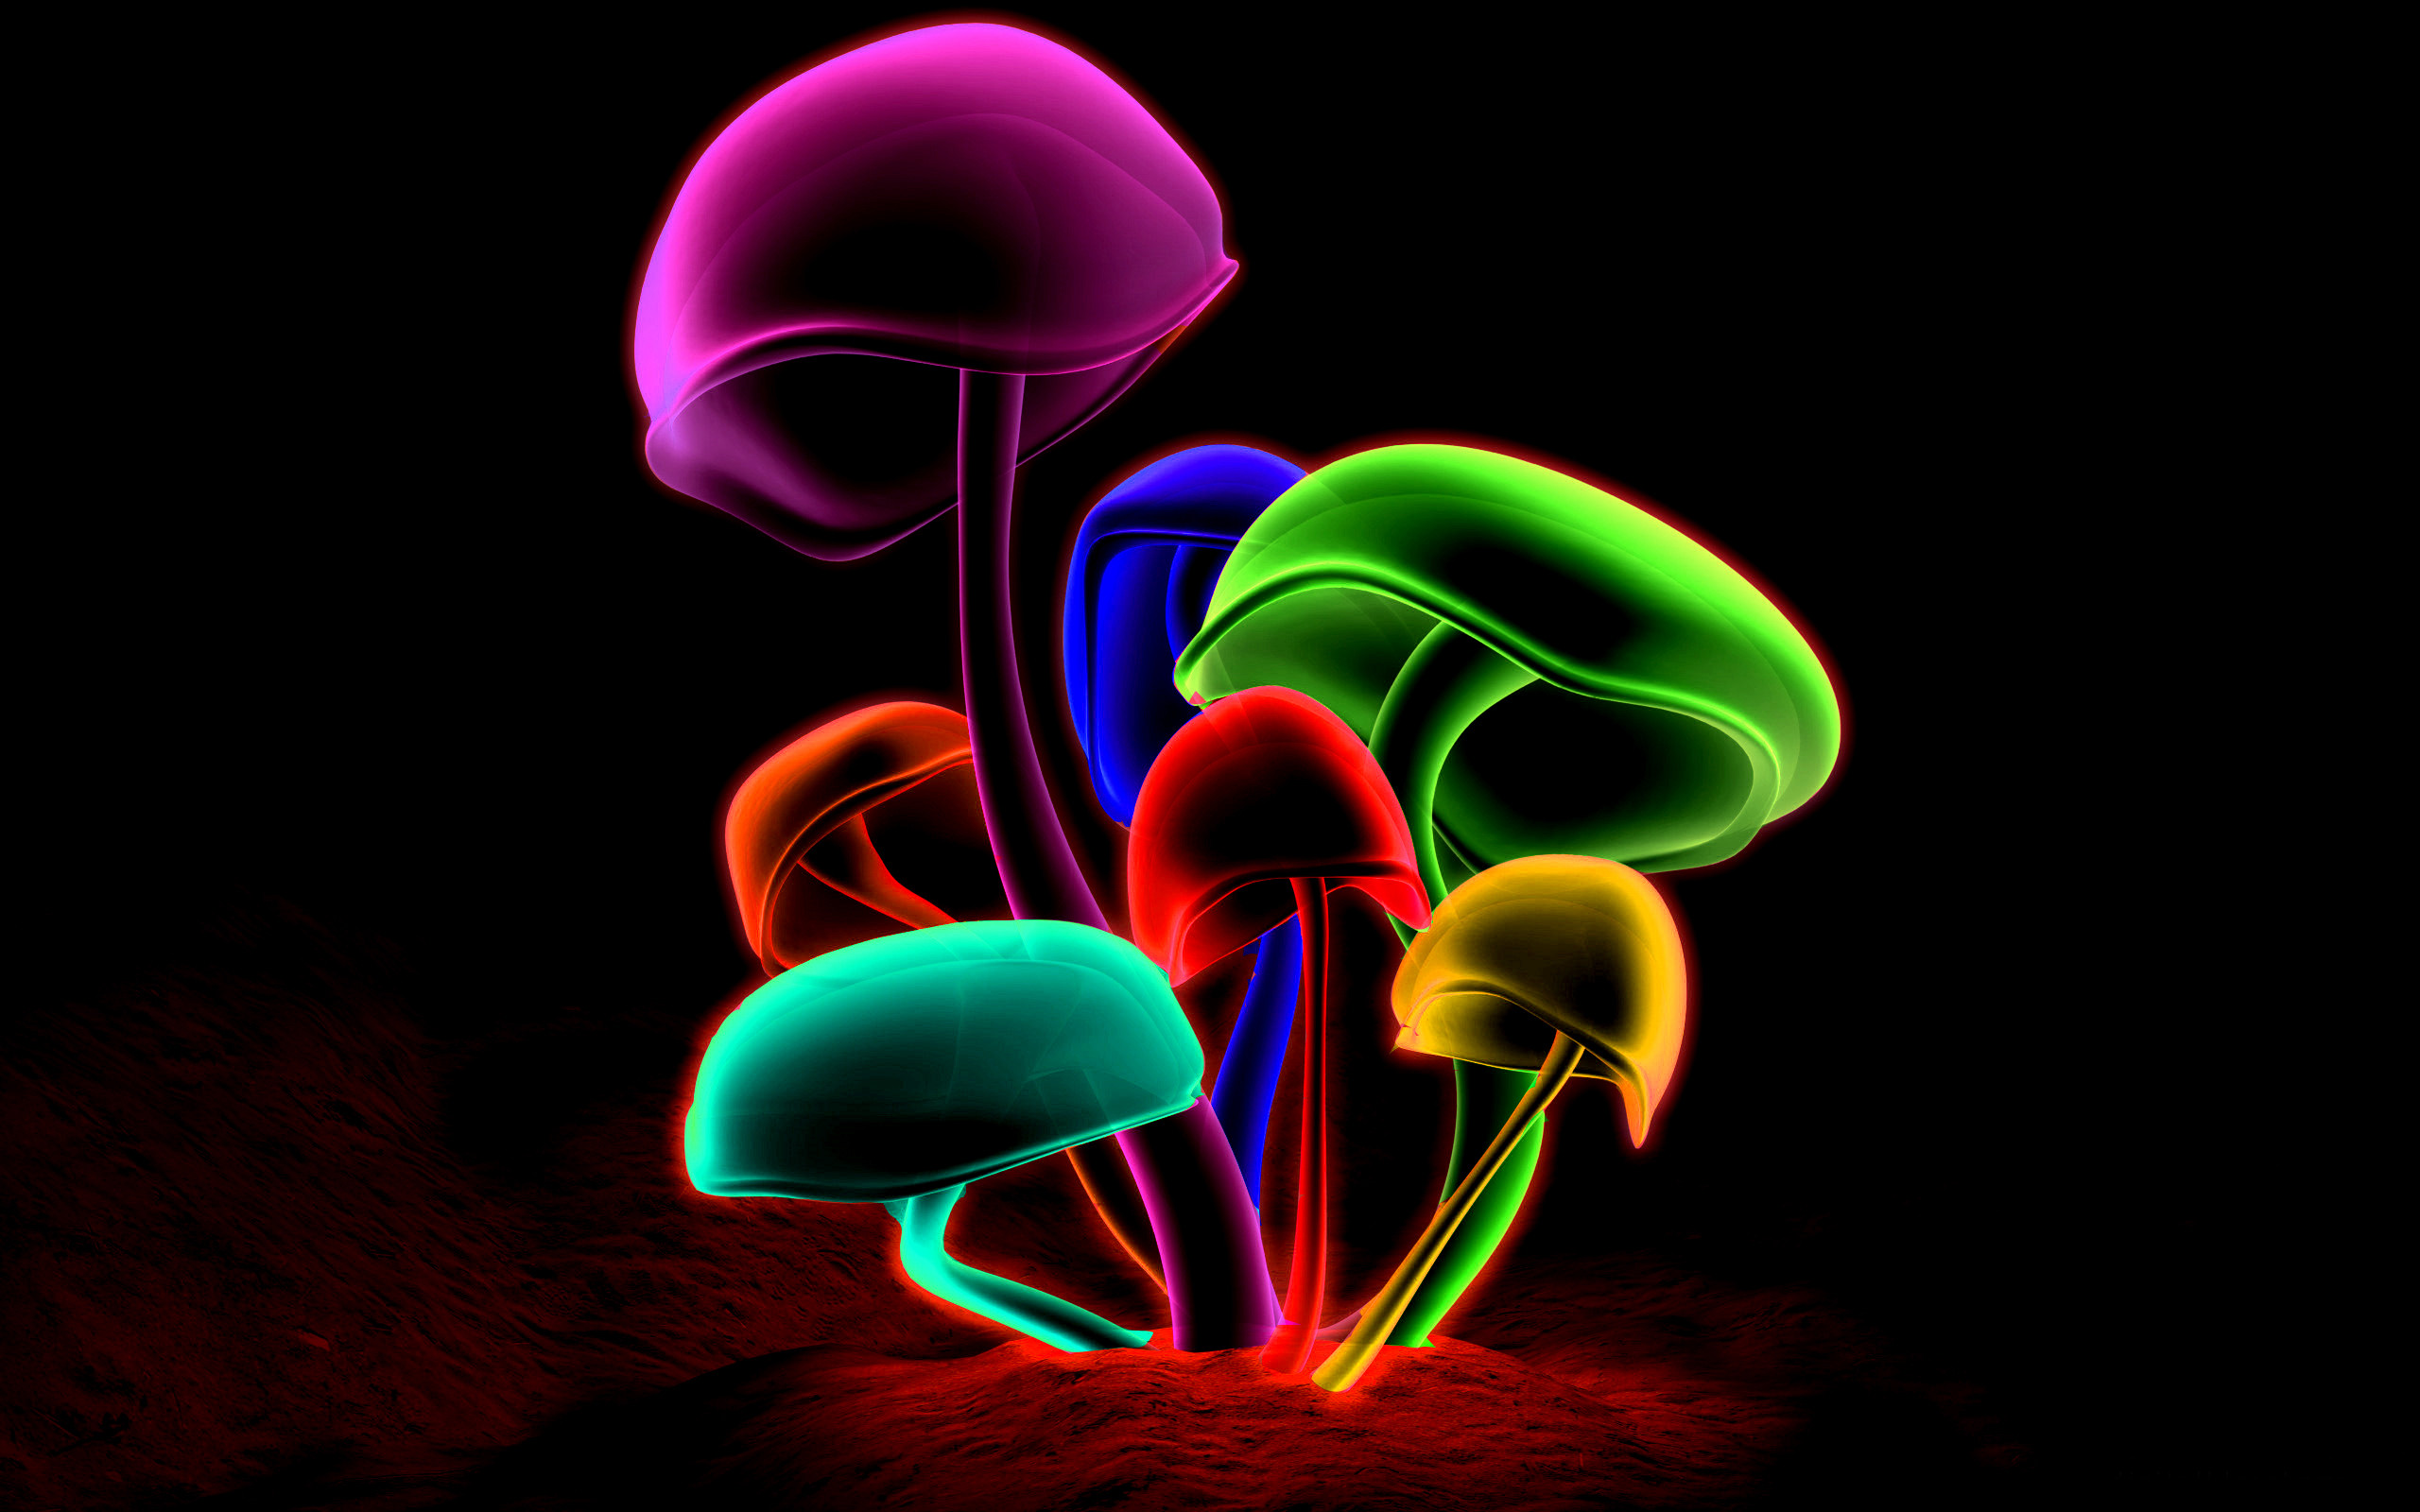 Colorful Mushrooms wallpaper with resolution up to – 21995